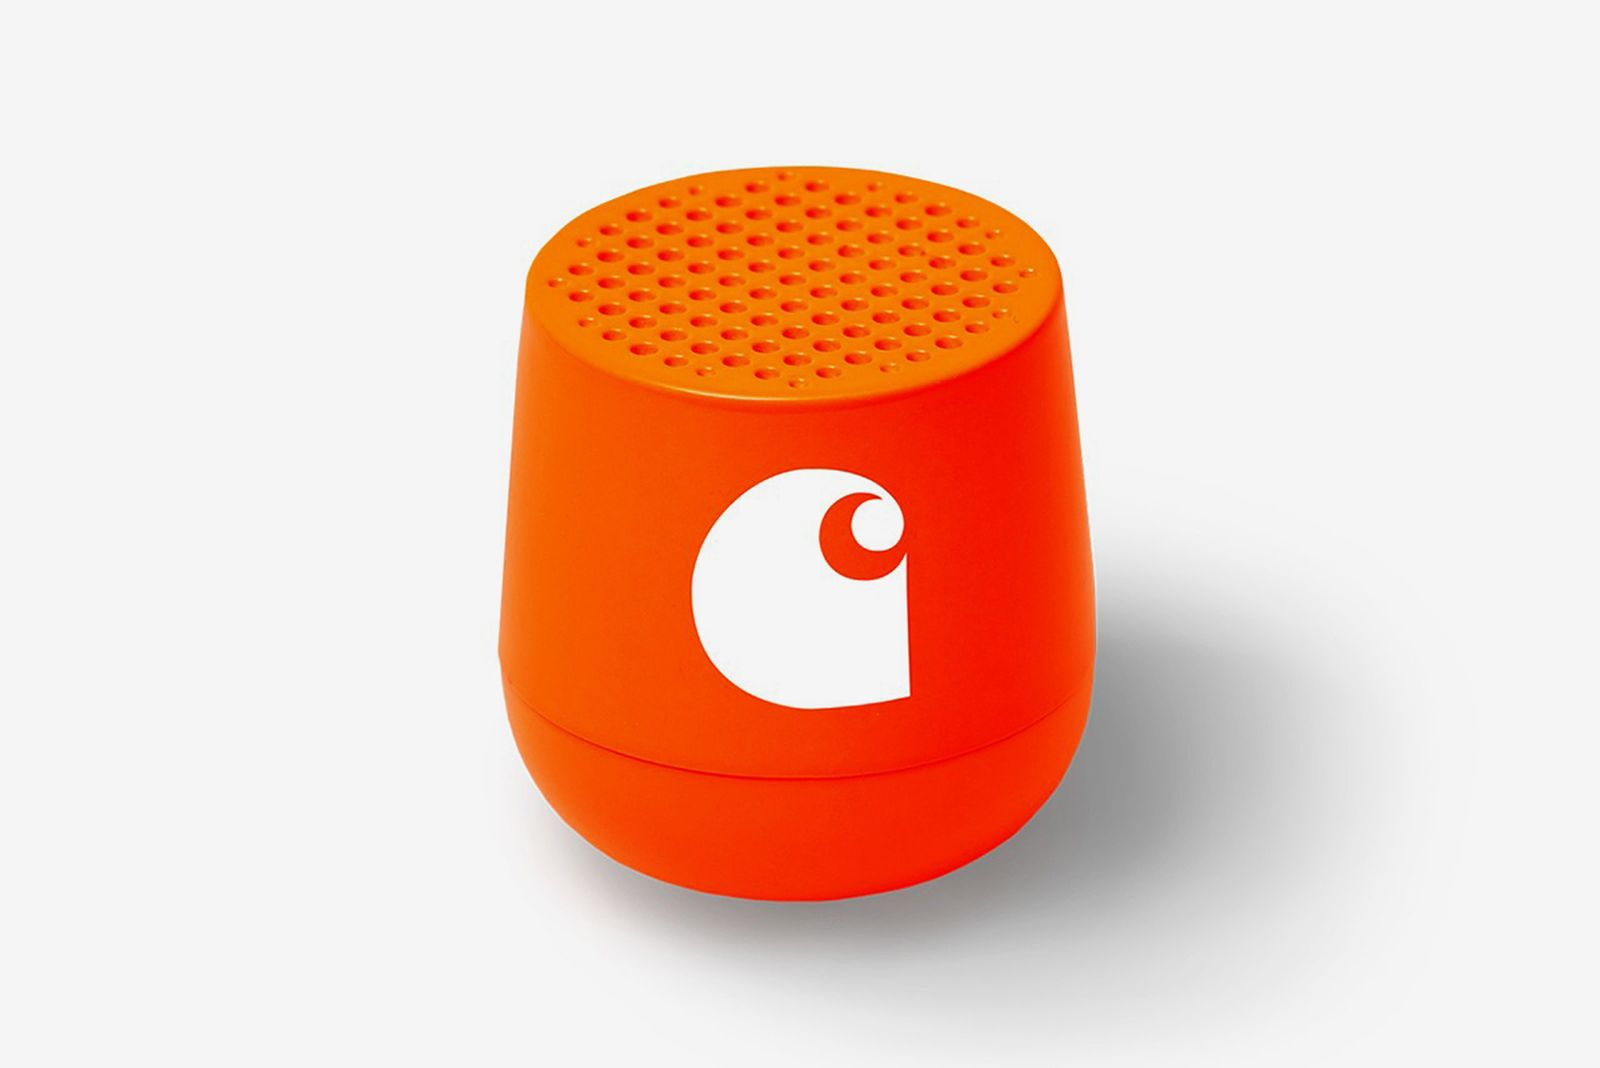 Carhartt WIP orange speaker